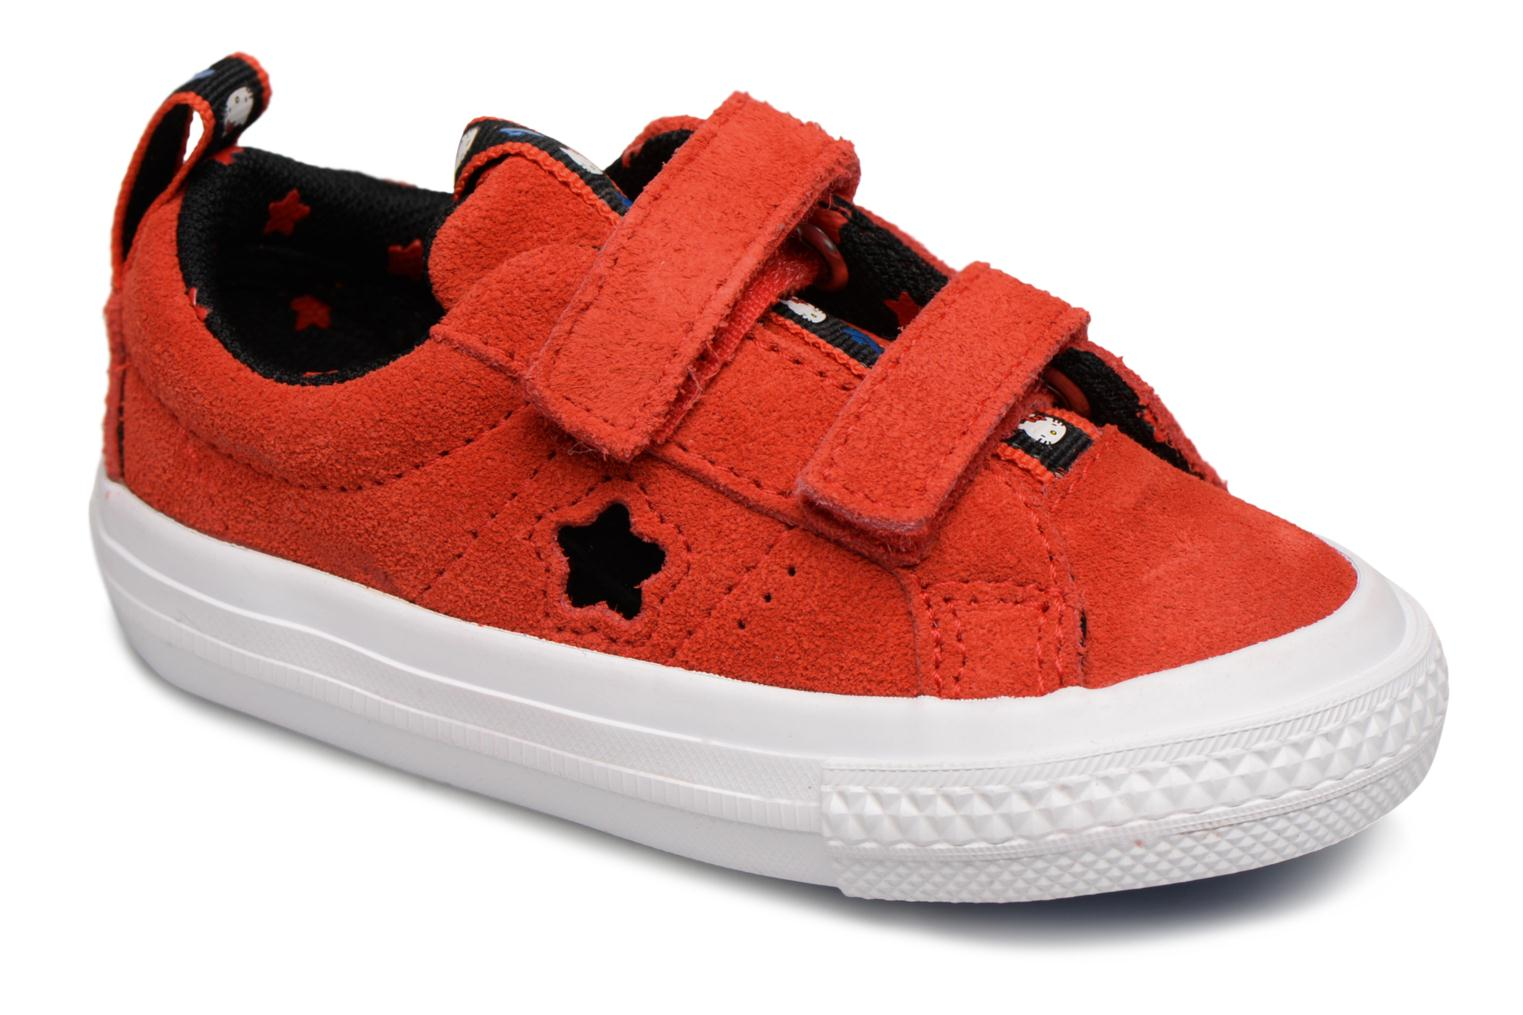 Baskets Converse Converse x Hello Kitty - One Star 2V Ox Rouge vue détail/paire